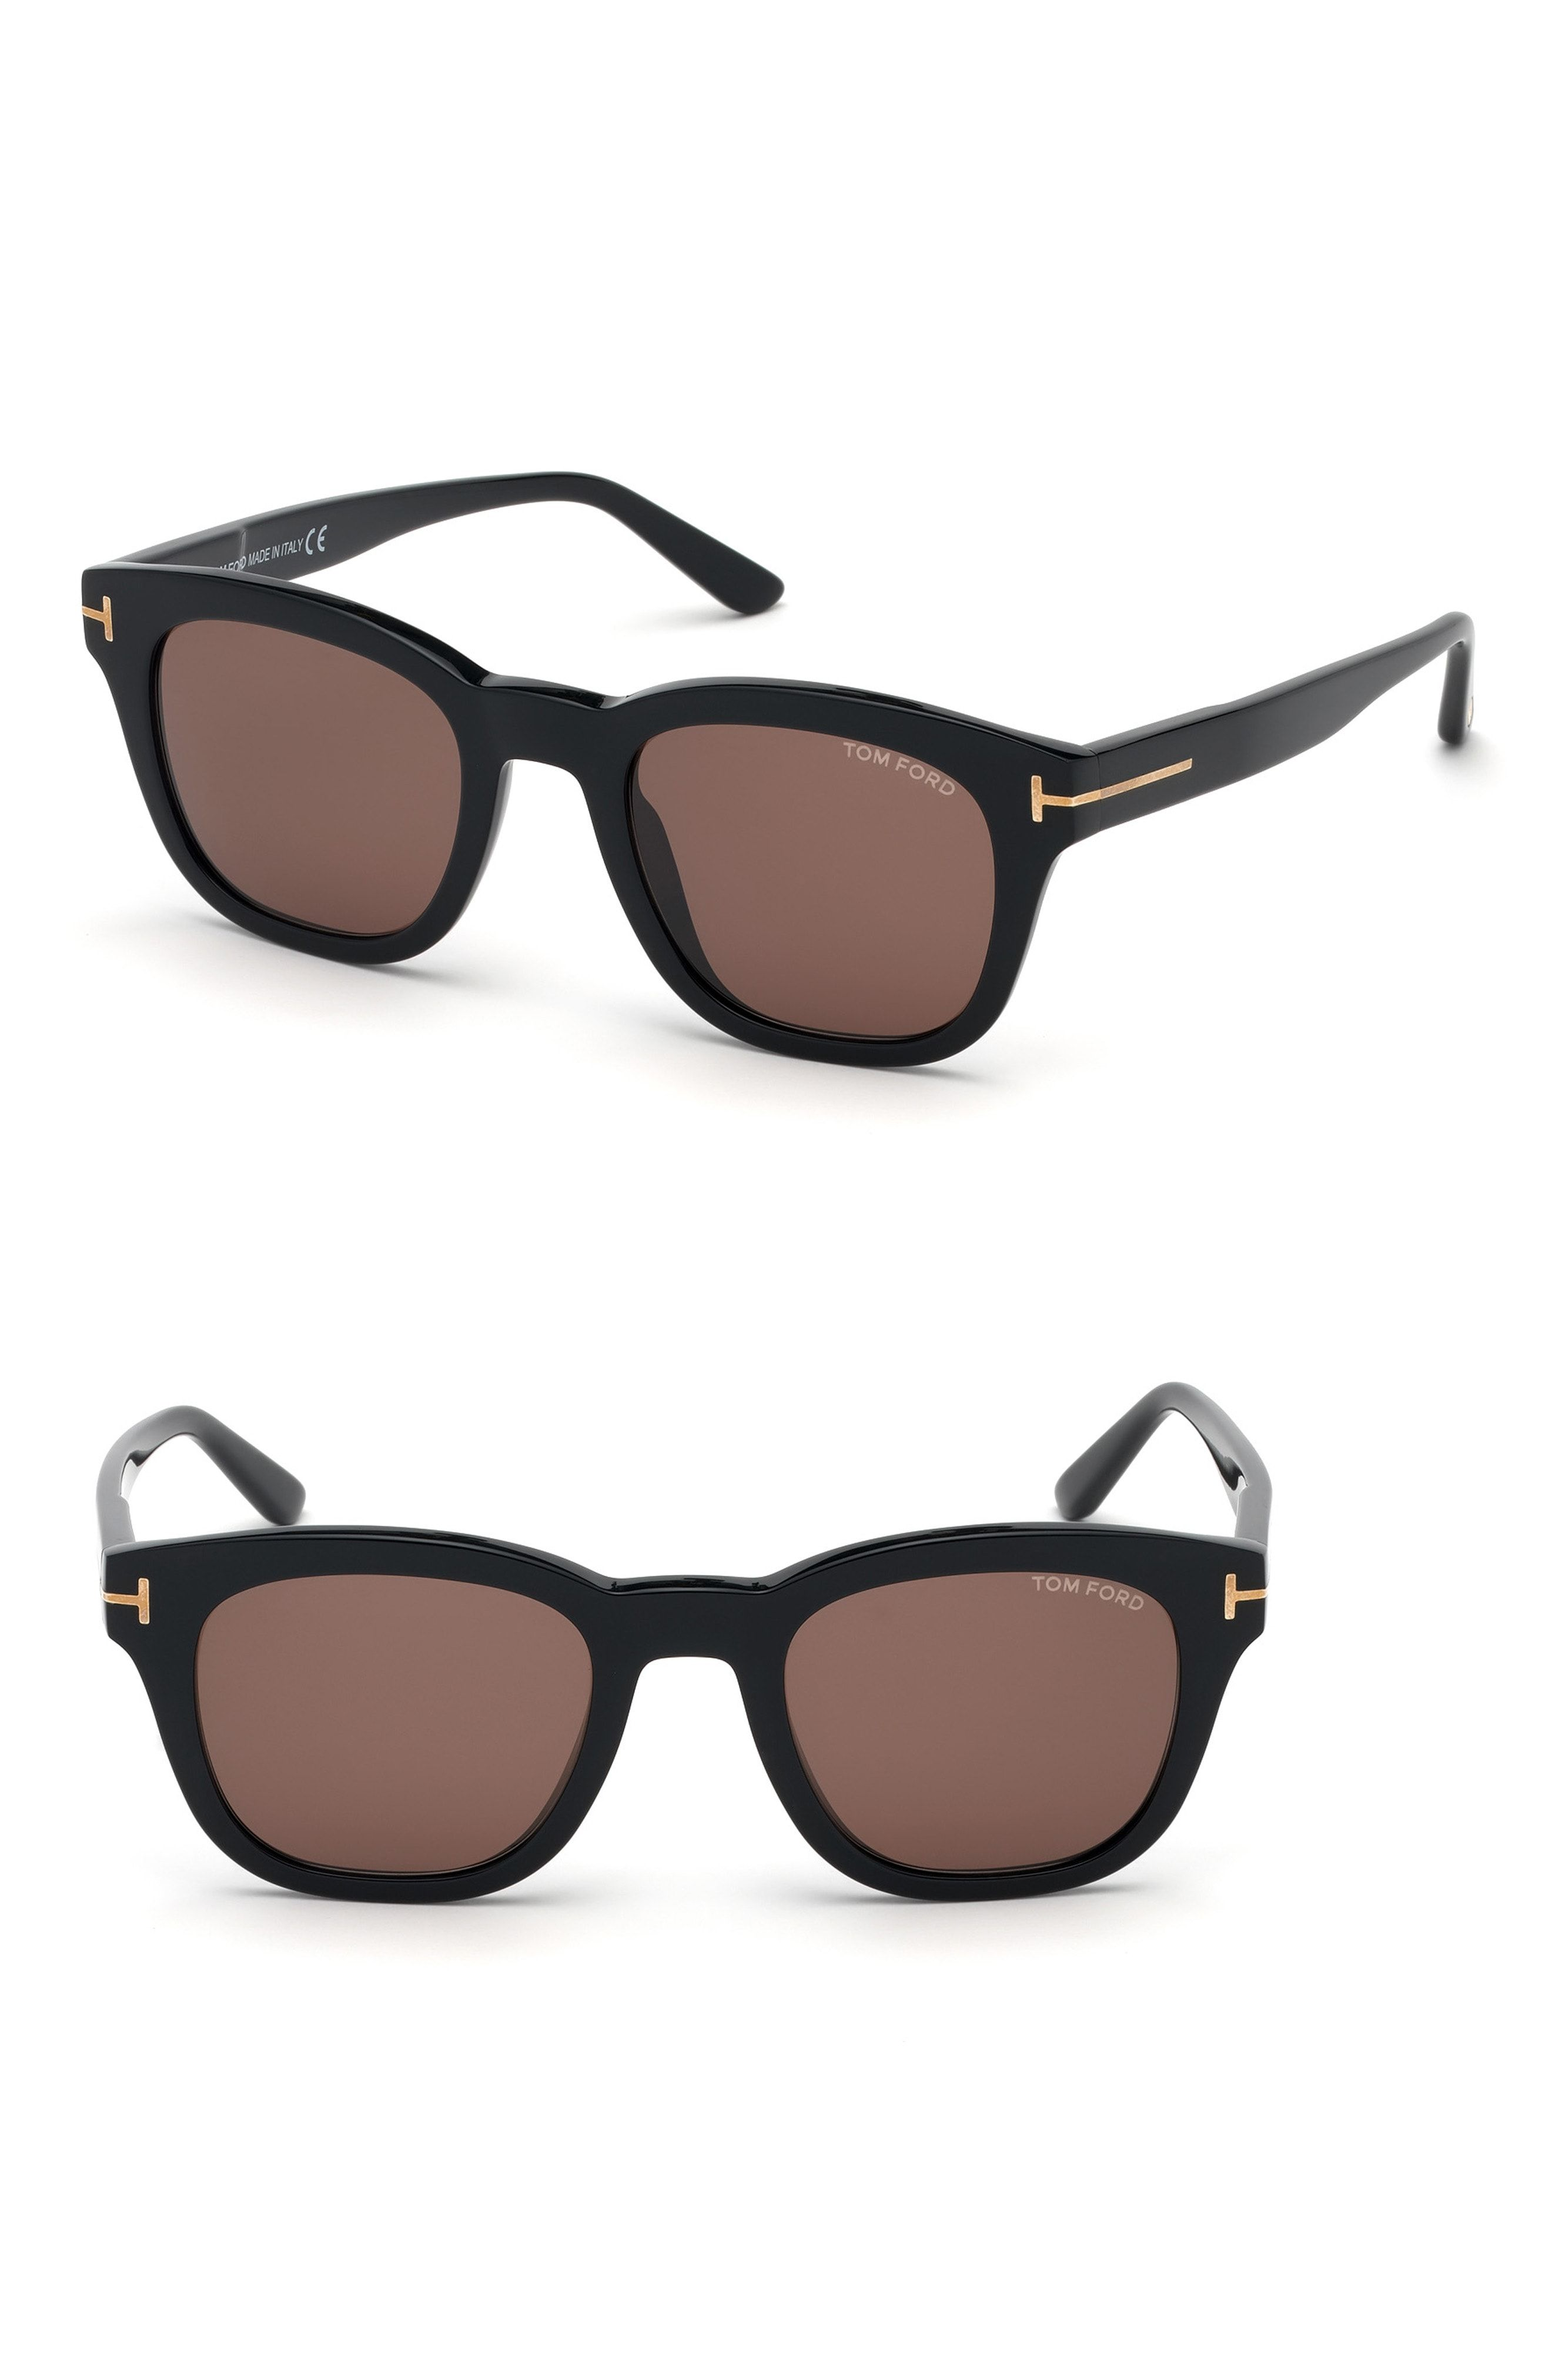 a16b62ea29b TOM FORD EUGENIO 52MM SUNGLASSES - SHINY BLACK  BROWN.  tomford ...